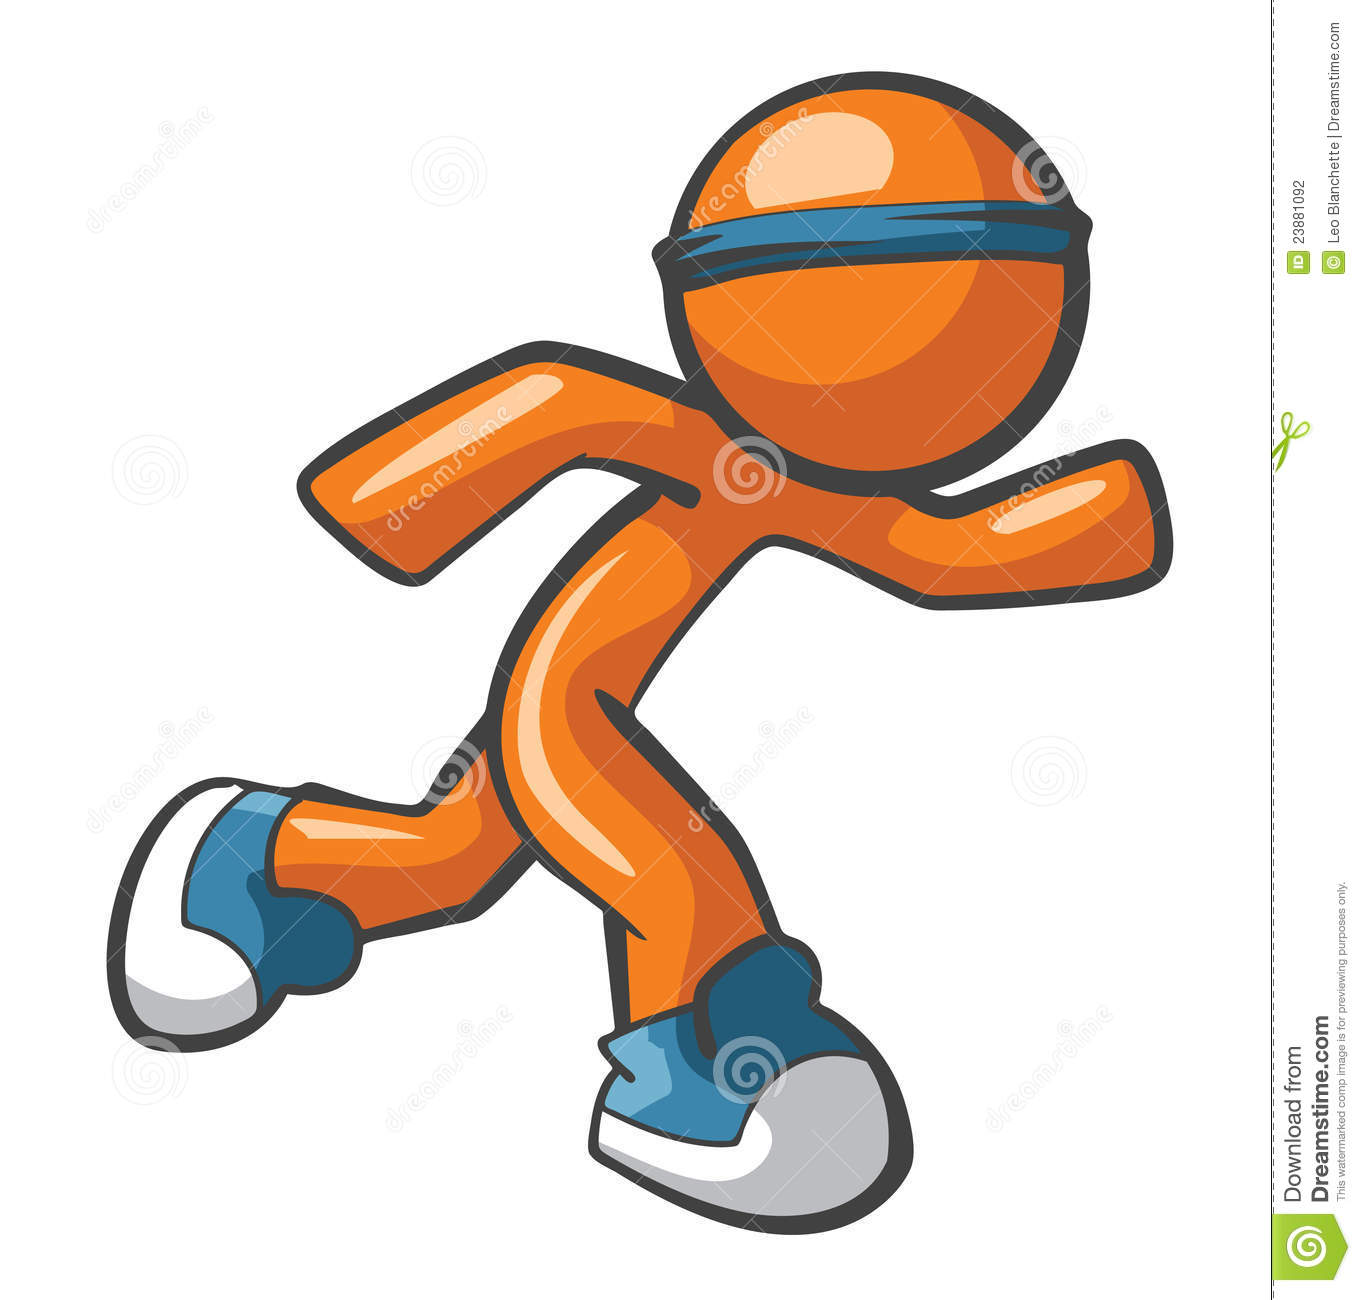 Walking Running Shoes Clipart